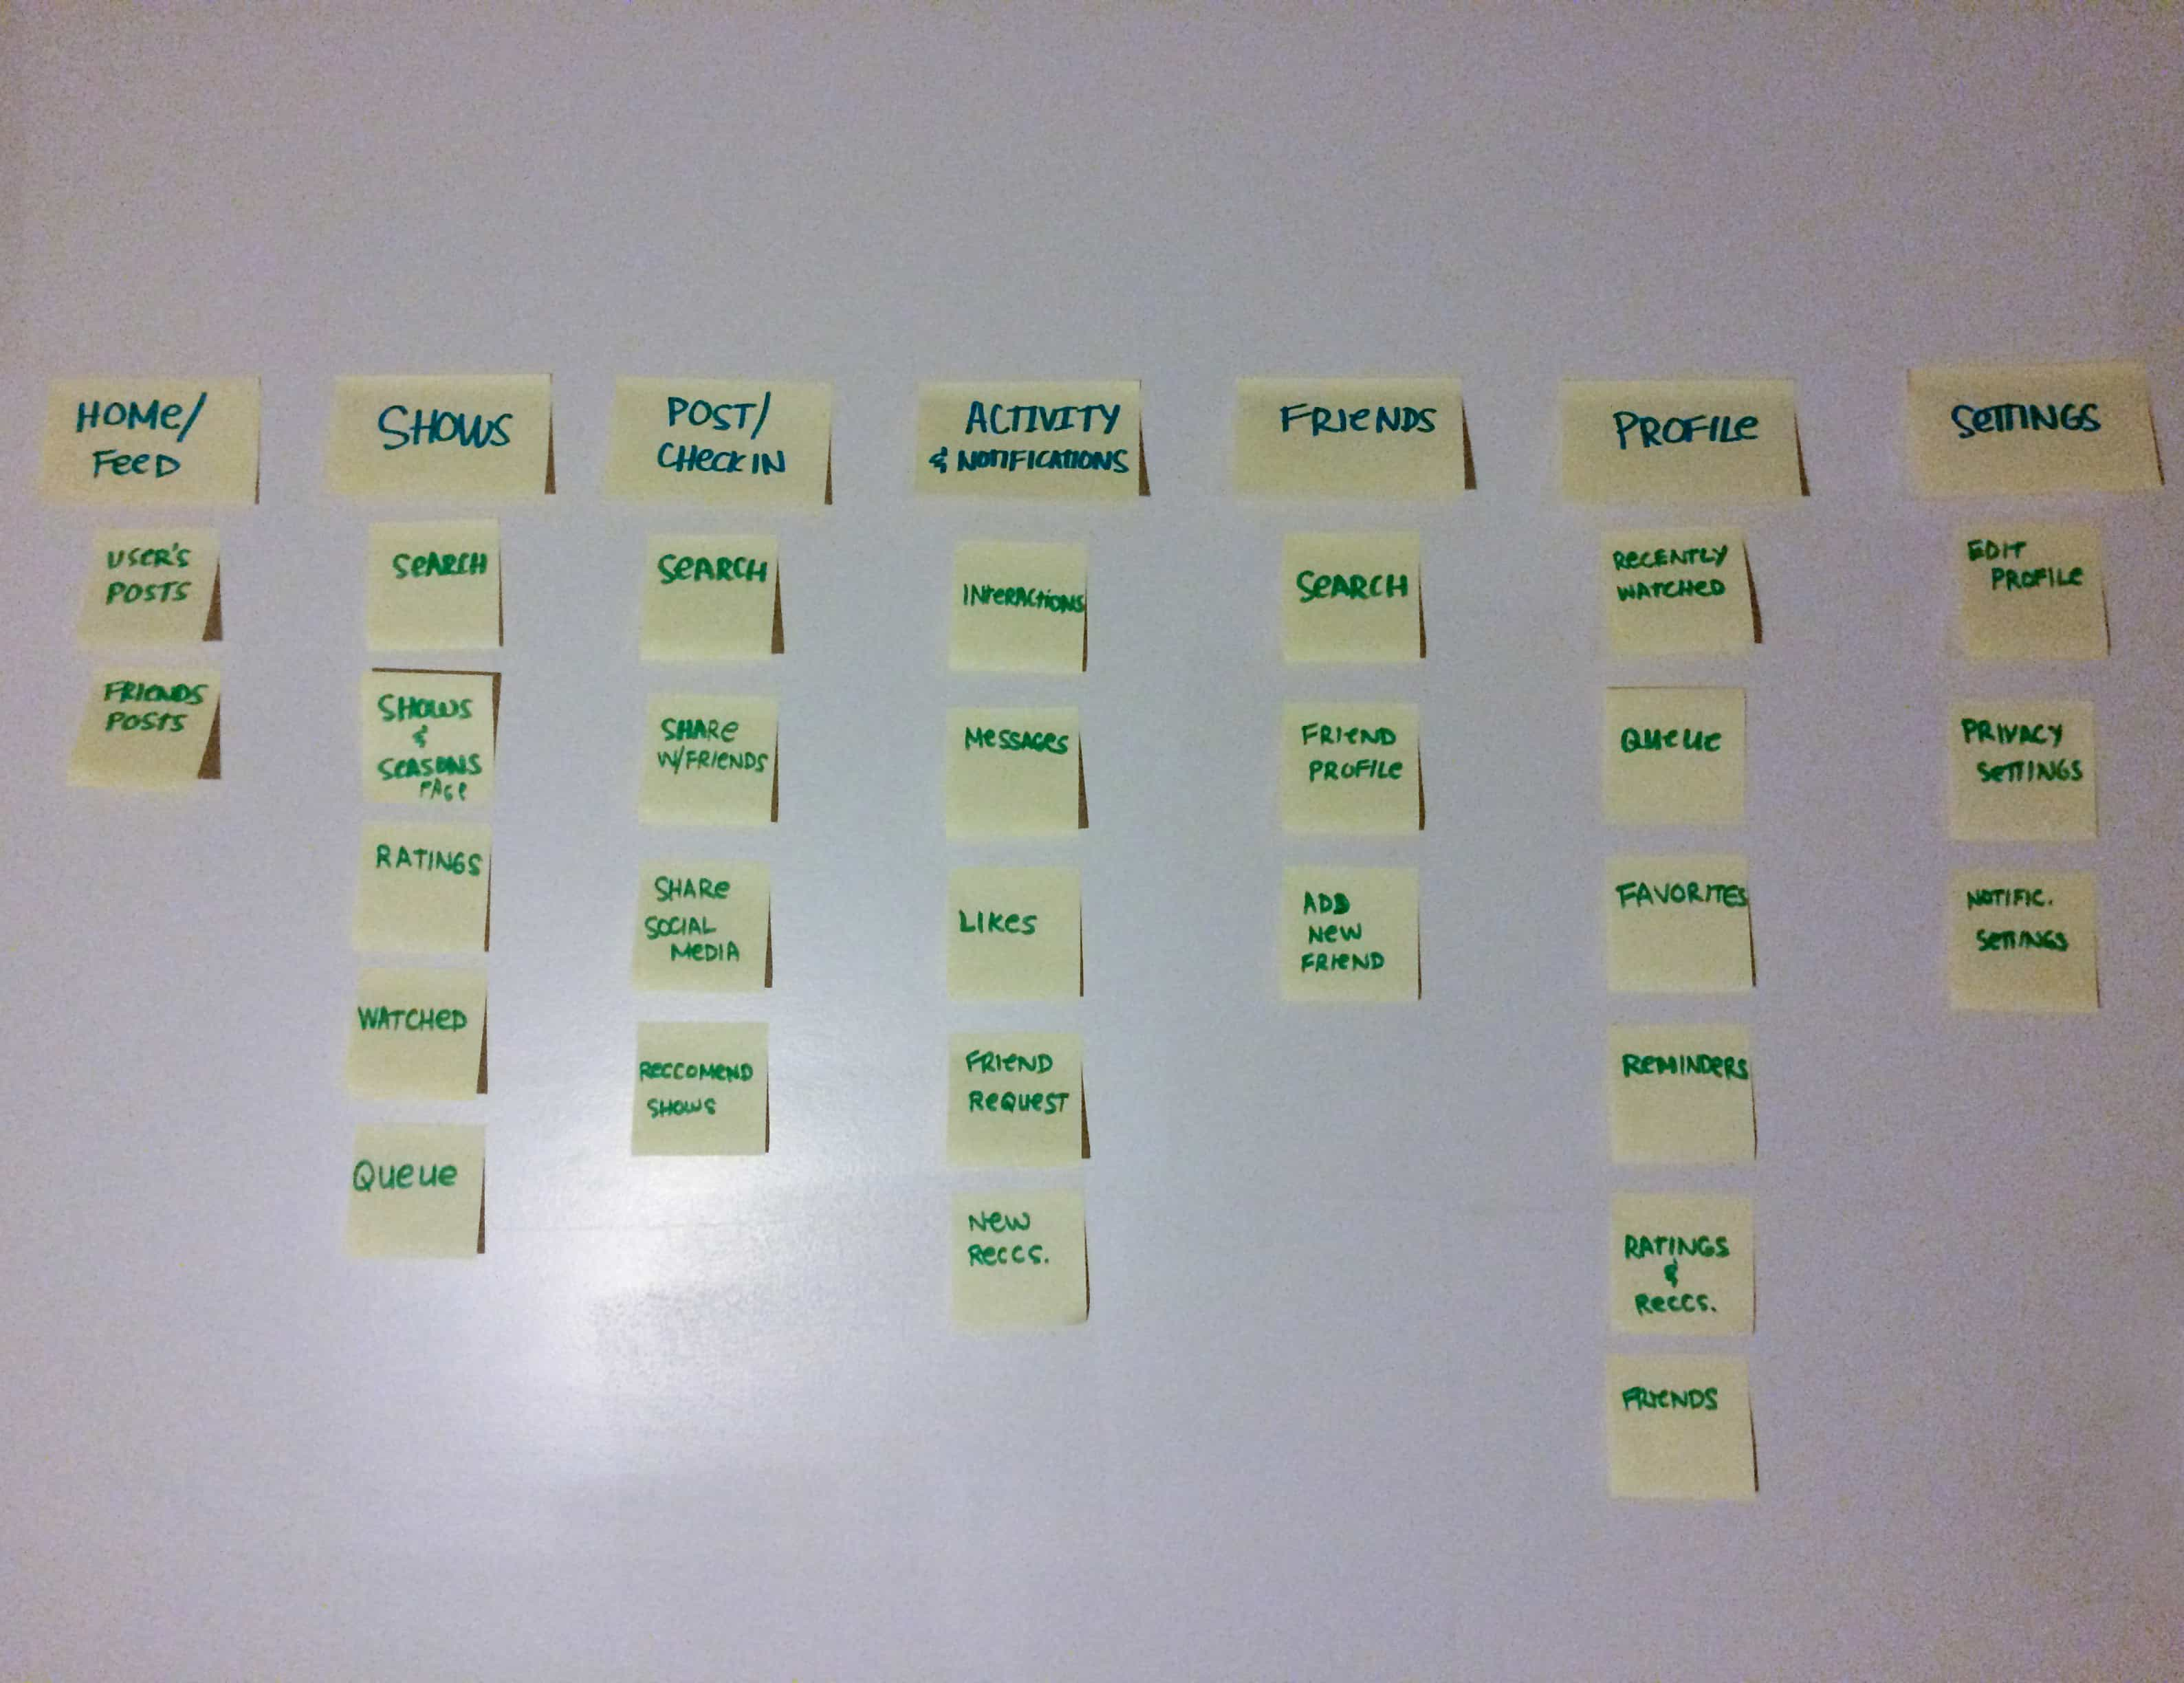 // Whiteboarding sessions of user flow (1 of 2)